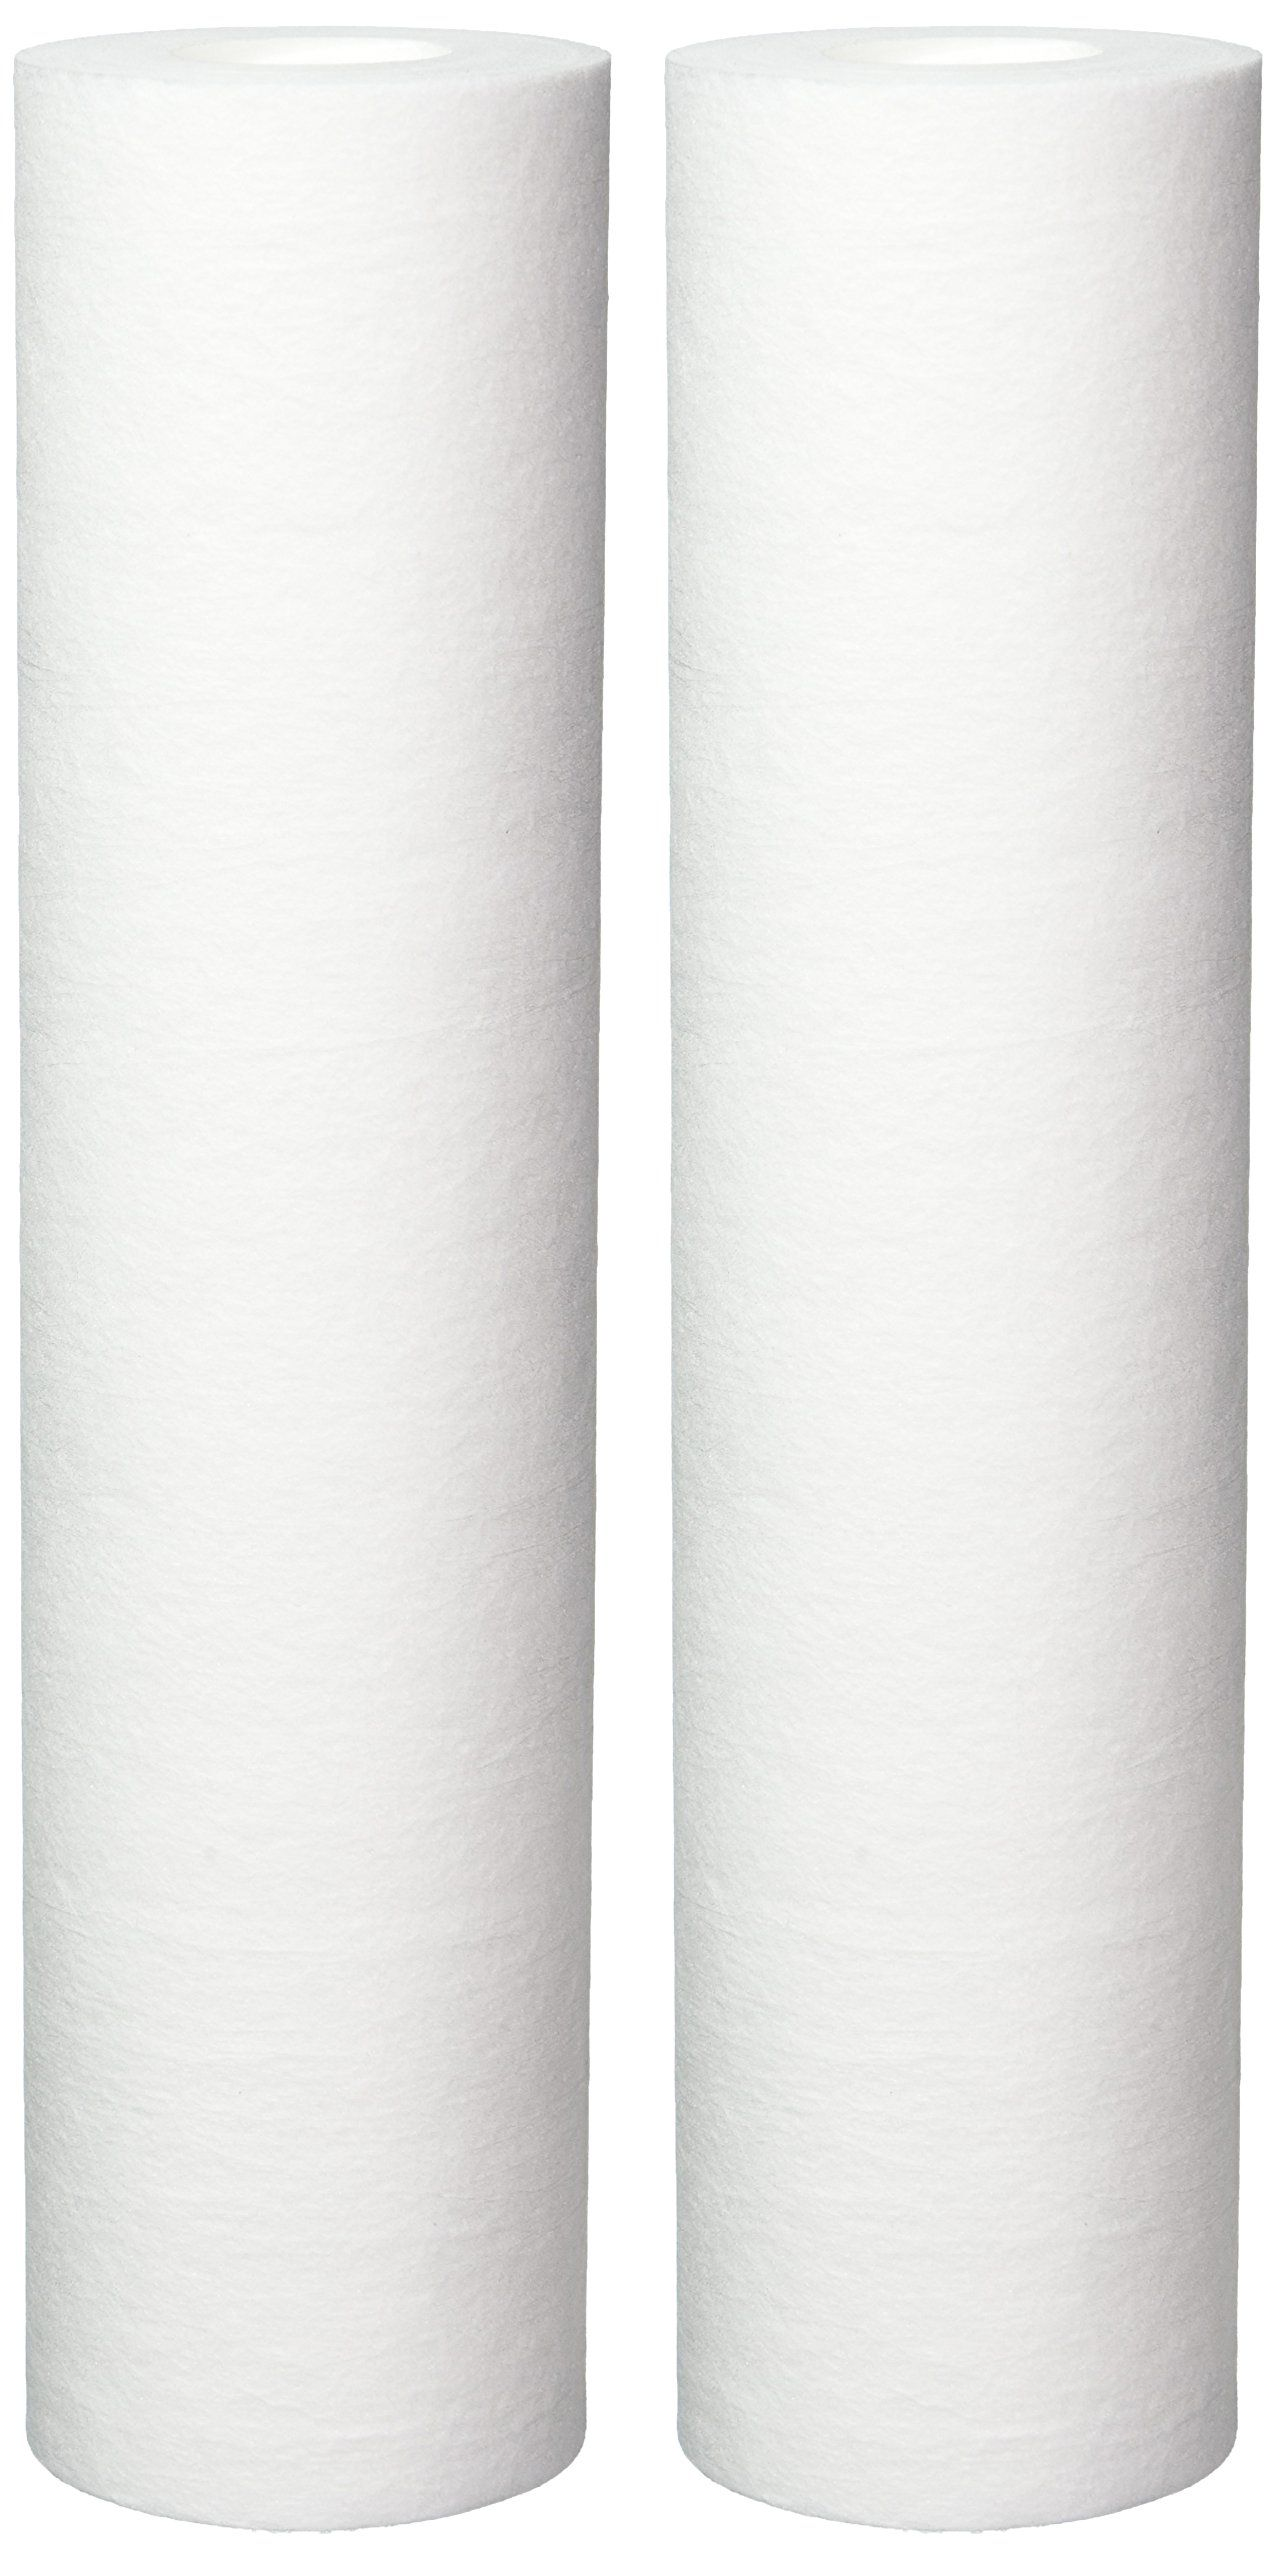 Culligan P5a P5 Whole House Premium Water Filter 8000 Gallons More Info Could Be Found At The Image Url This Is Culligan Water Filter Replacement Filter